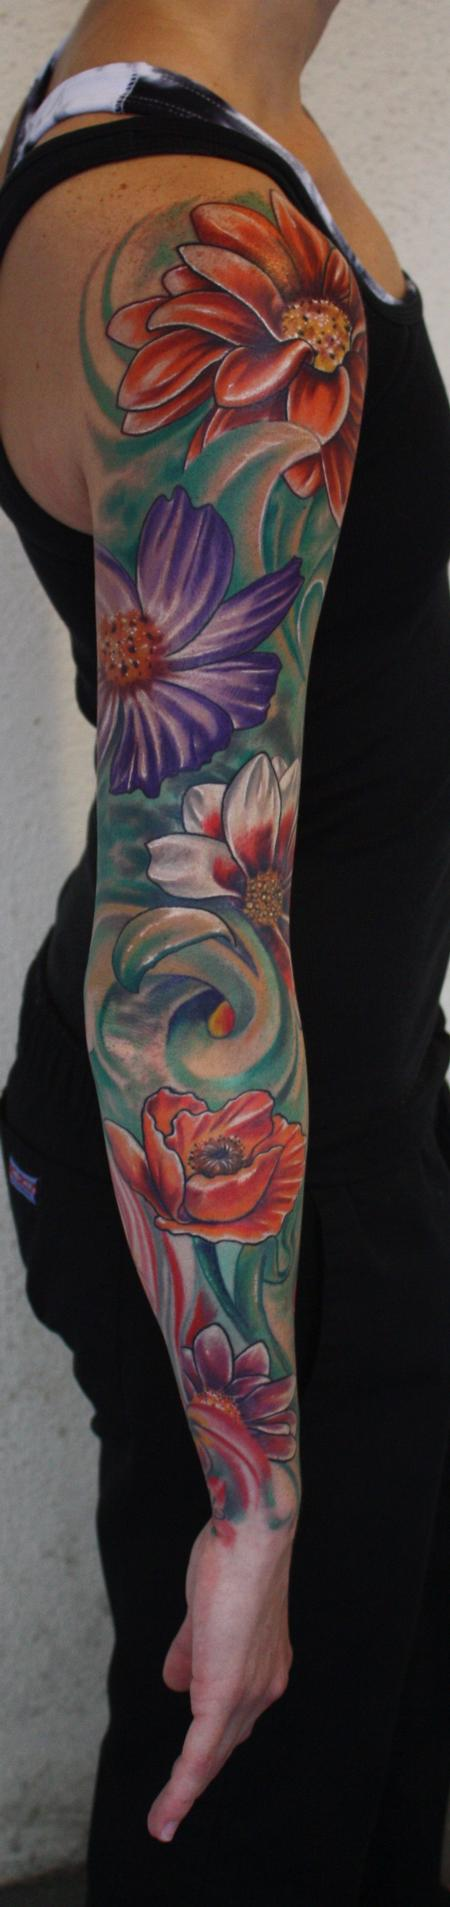 sleeve tattoos floral - photo #27